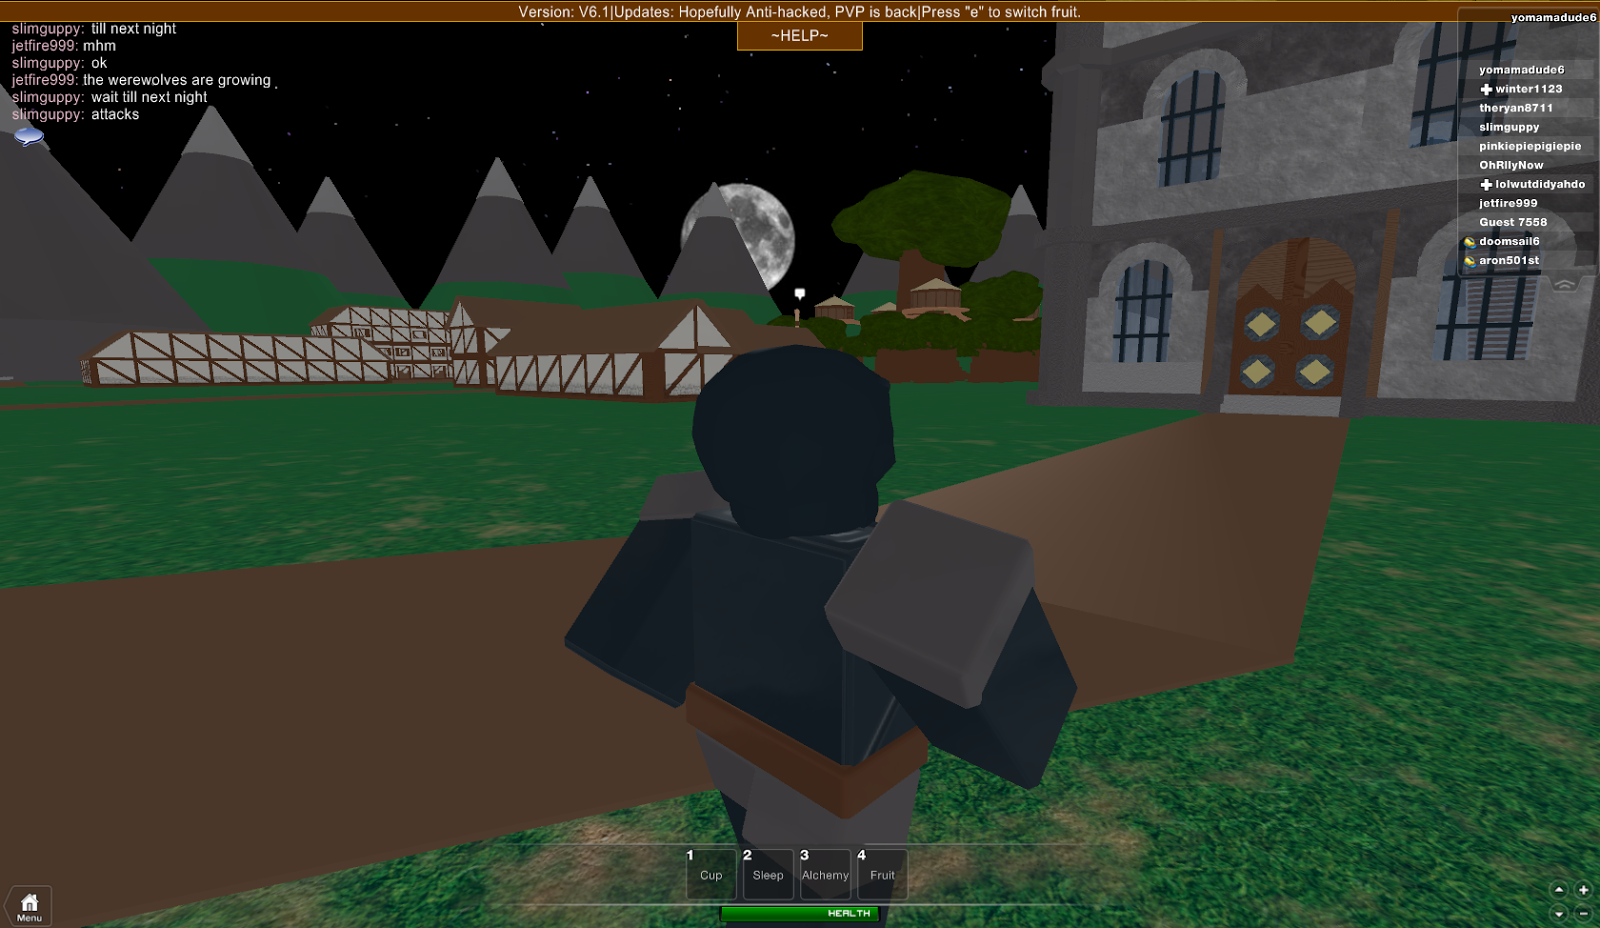 Roblox gear id code list bing images - Because Humans Are Social Animals The Game Takes That And Makes It The Core Gameplay This Lets The Players In The Game Decide Their Own Fate And